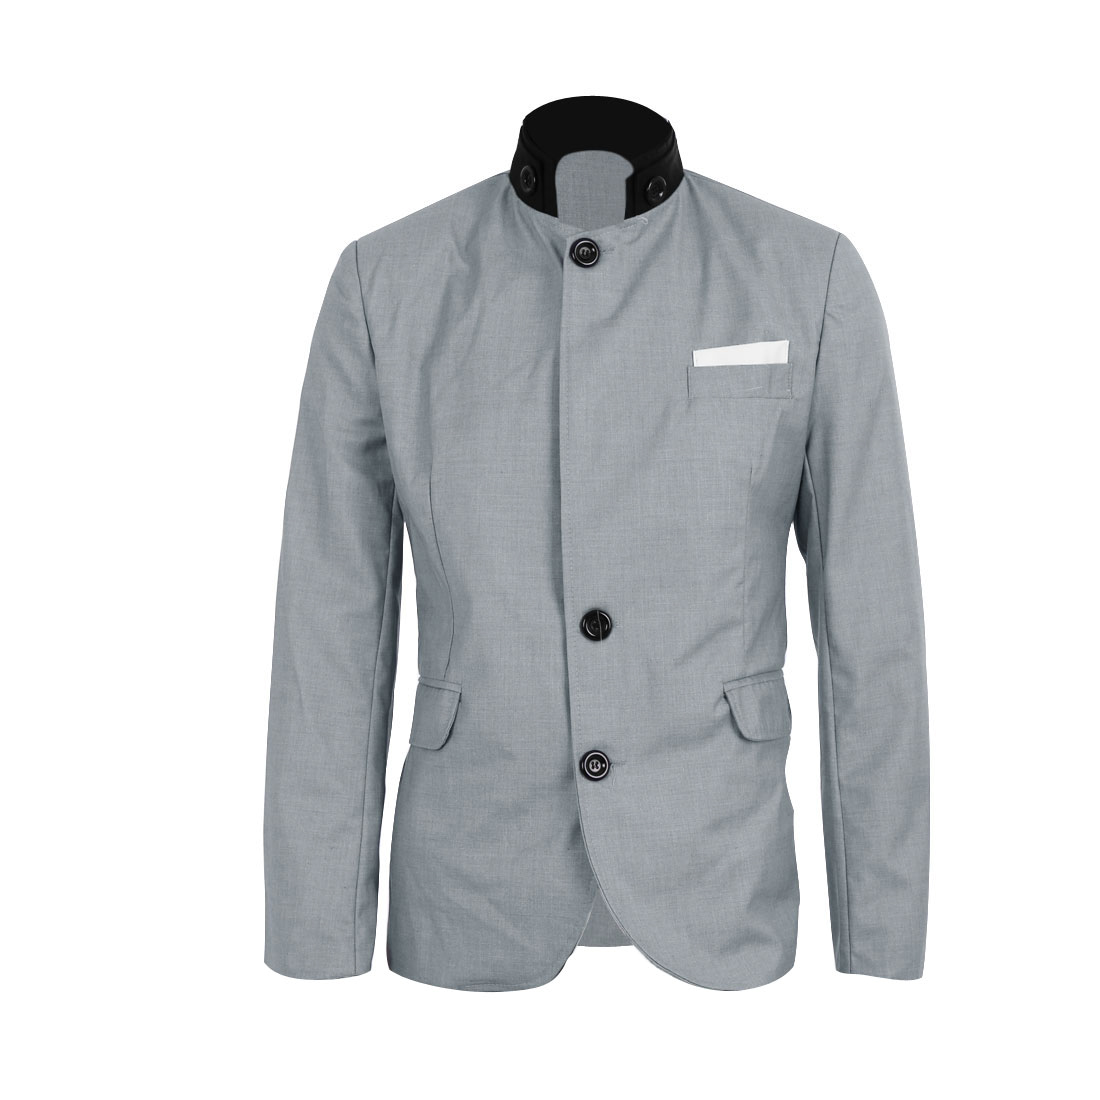 M Men Patch Pockets Stand Collar Long Sleeve Fashion Outerwear Blazer Grey